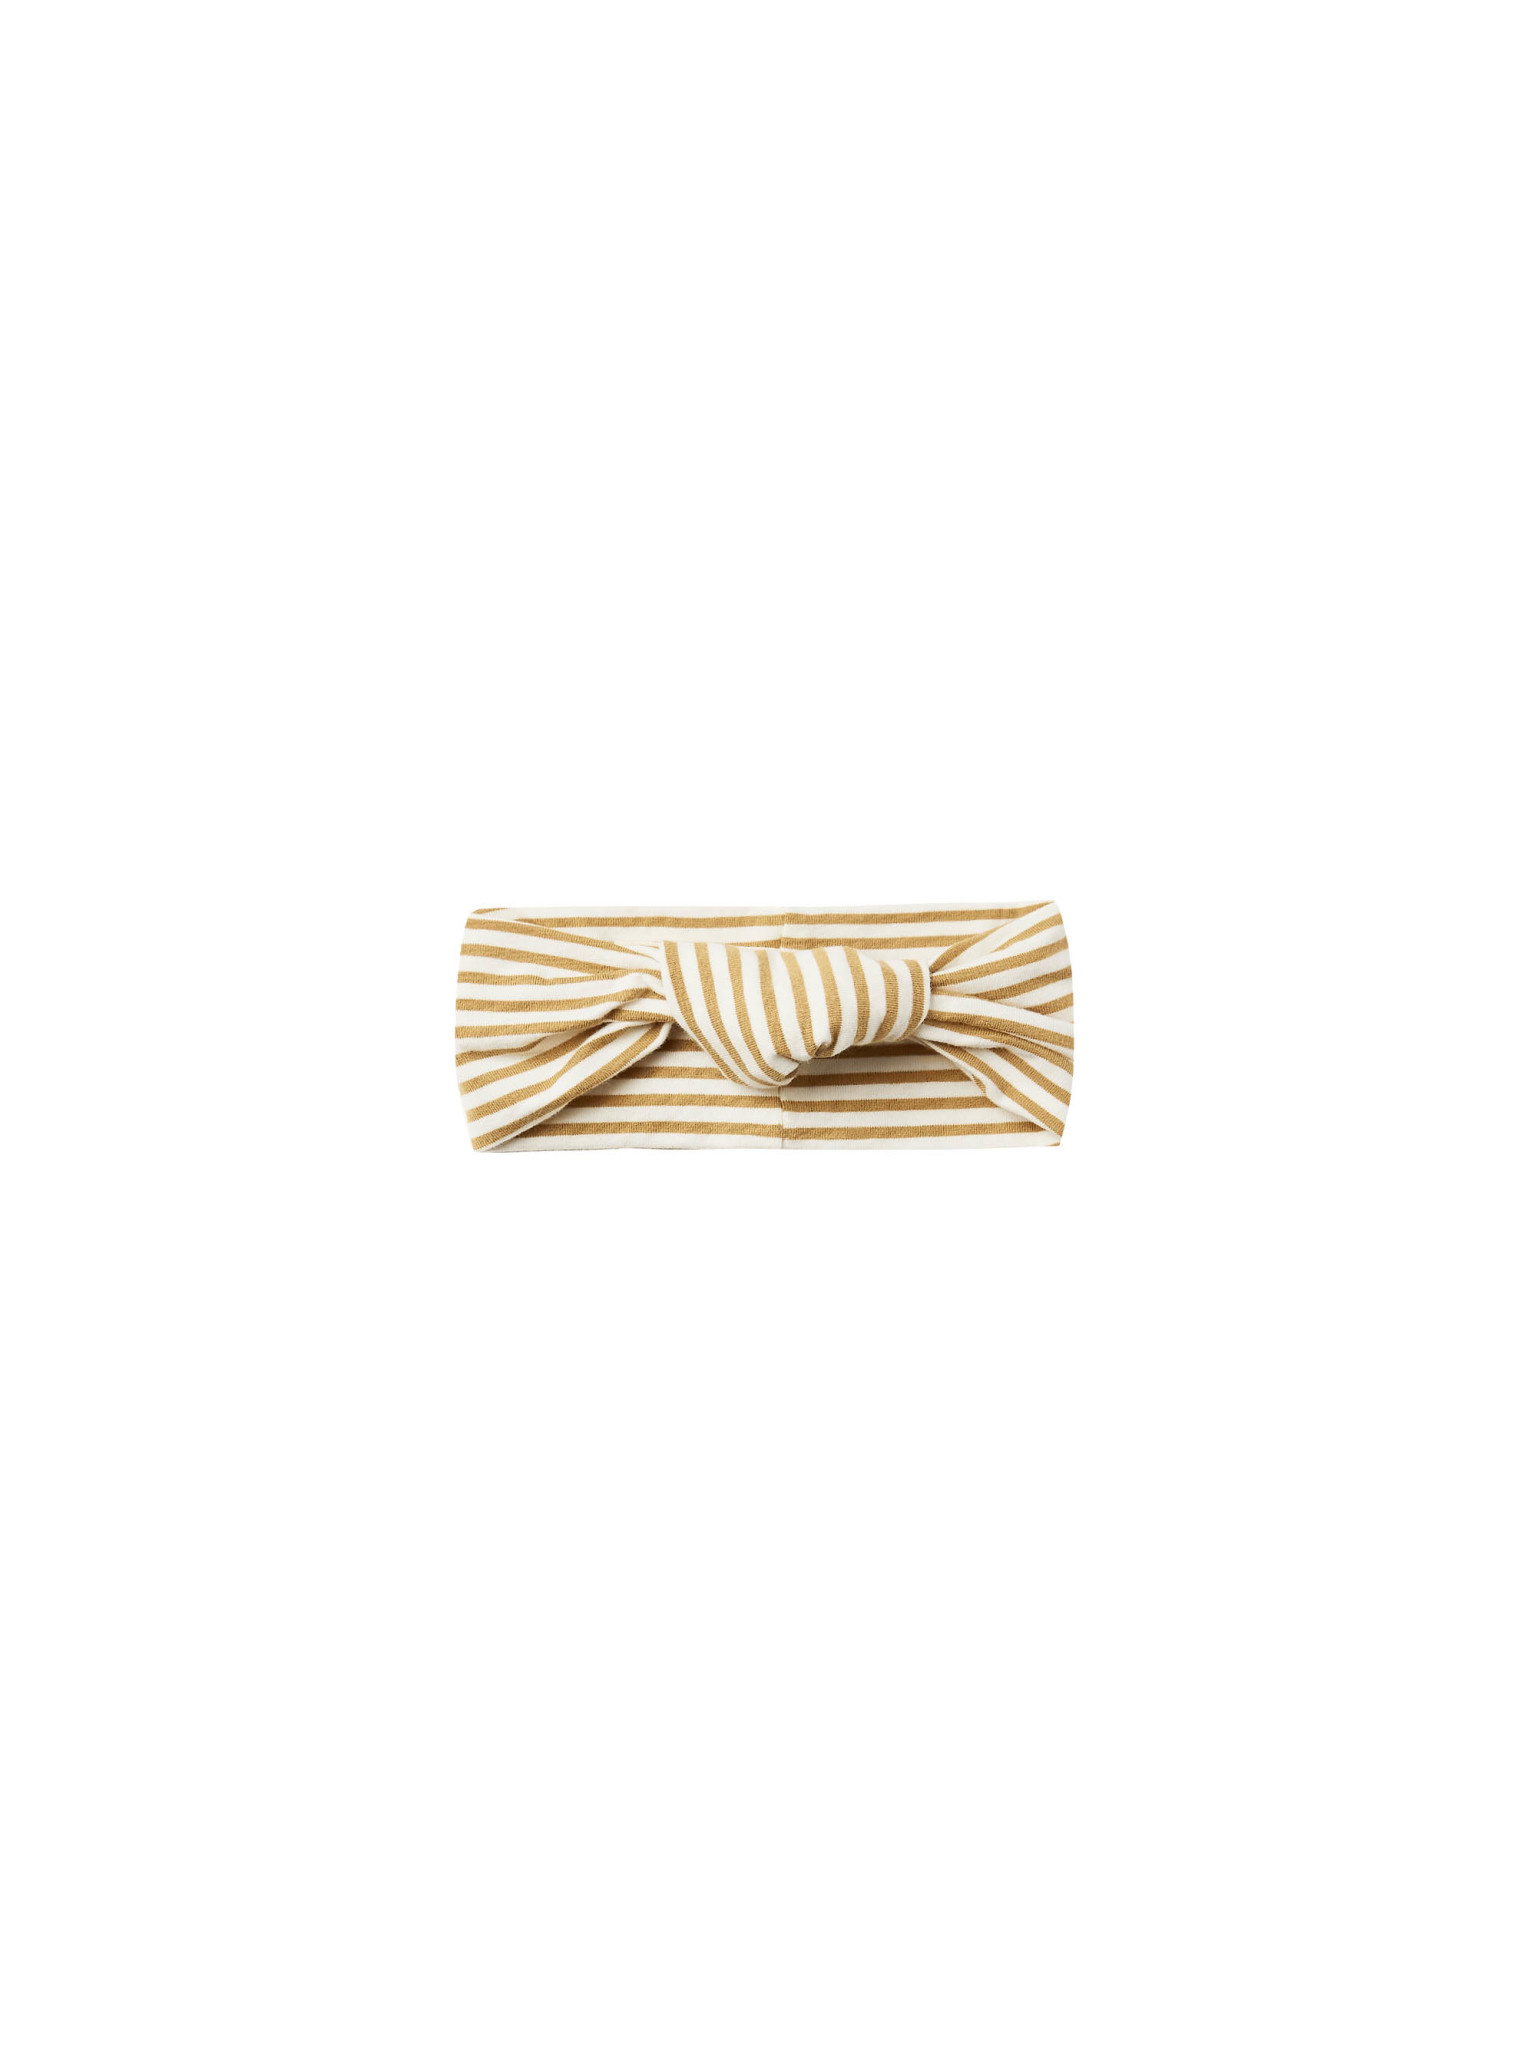 Quincy Mae Knotted Headband - Gold Stripe